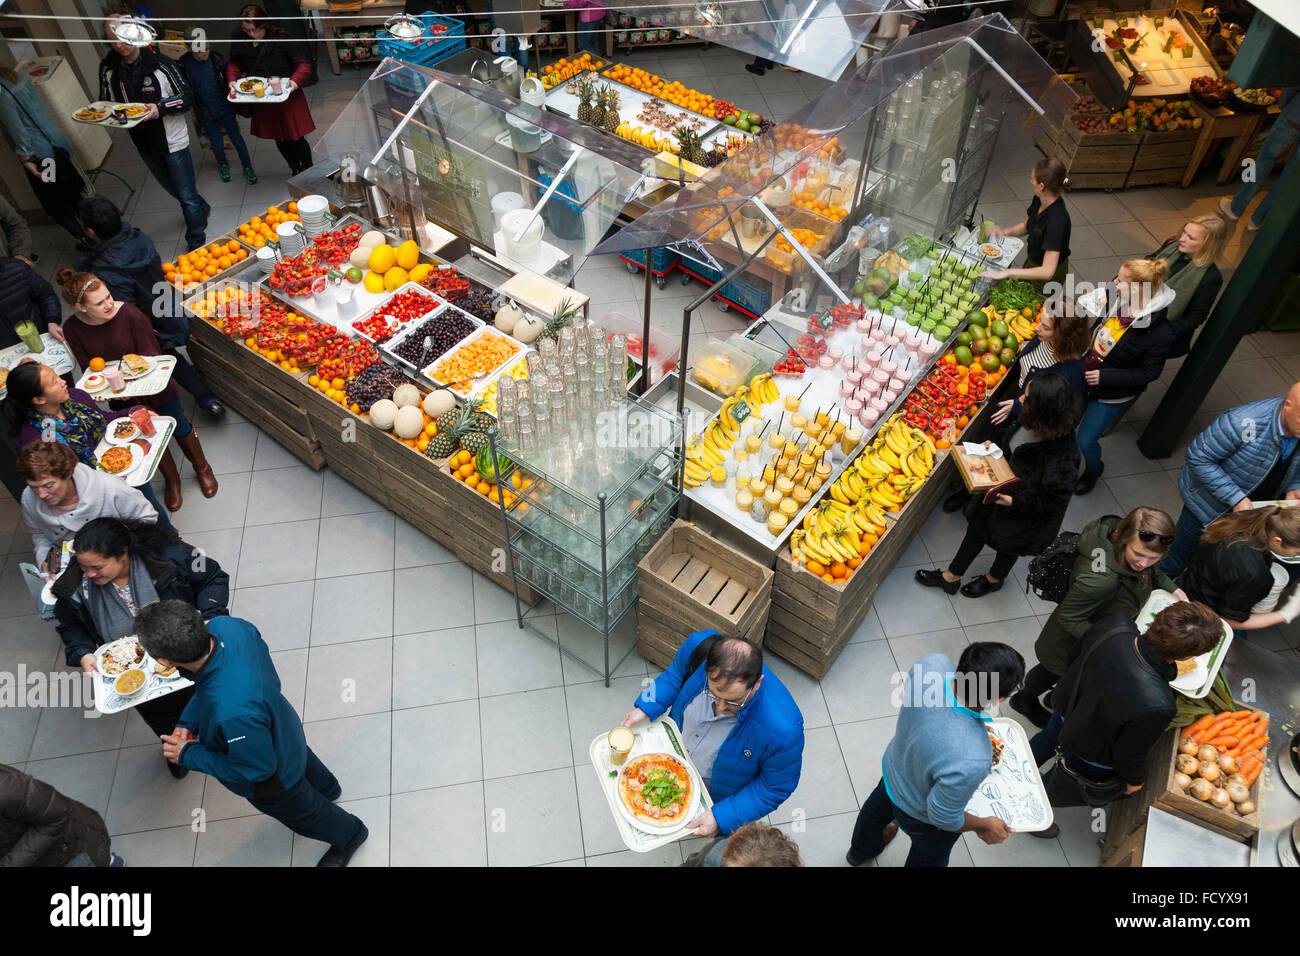 Customers serve themselves & queue to pay; La Place self-service food restaurant, Amsterdam city centre. Holland - Stock Image